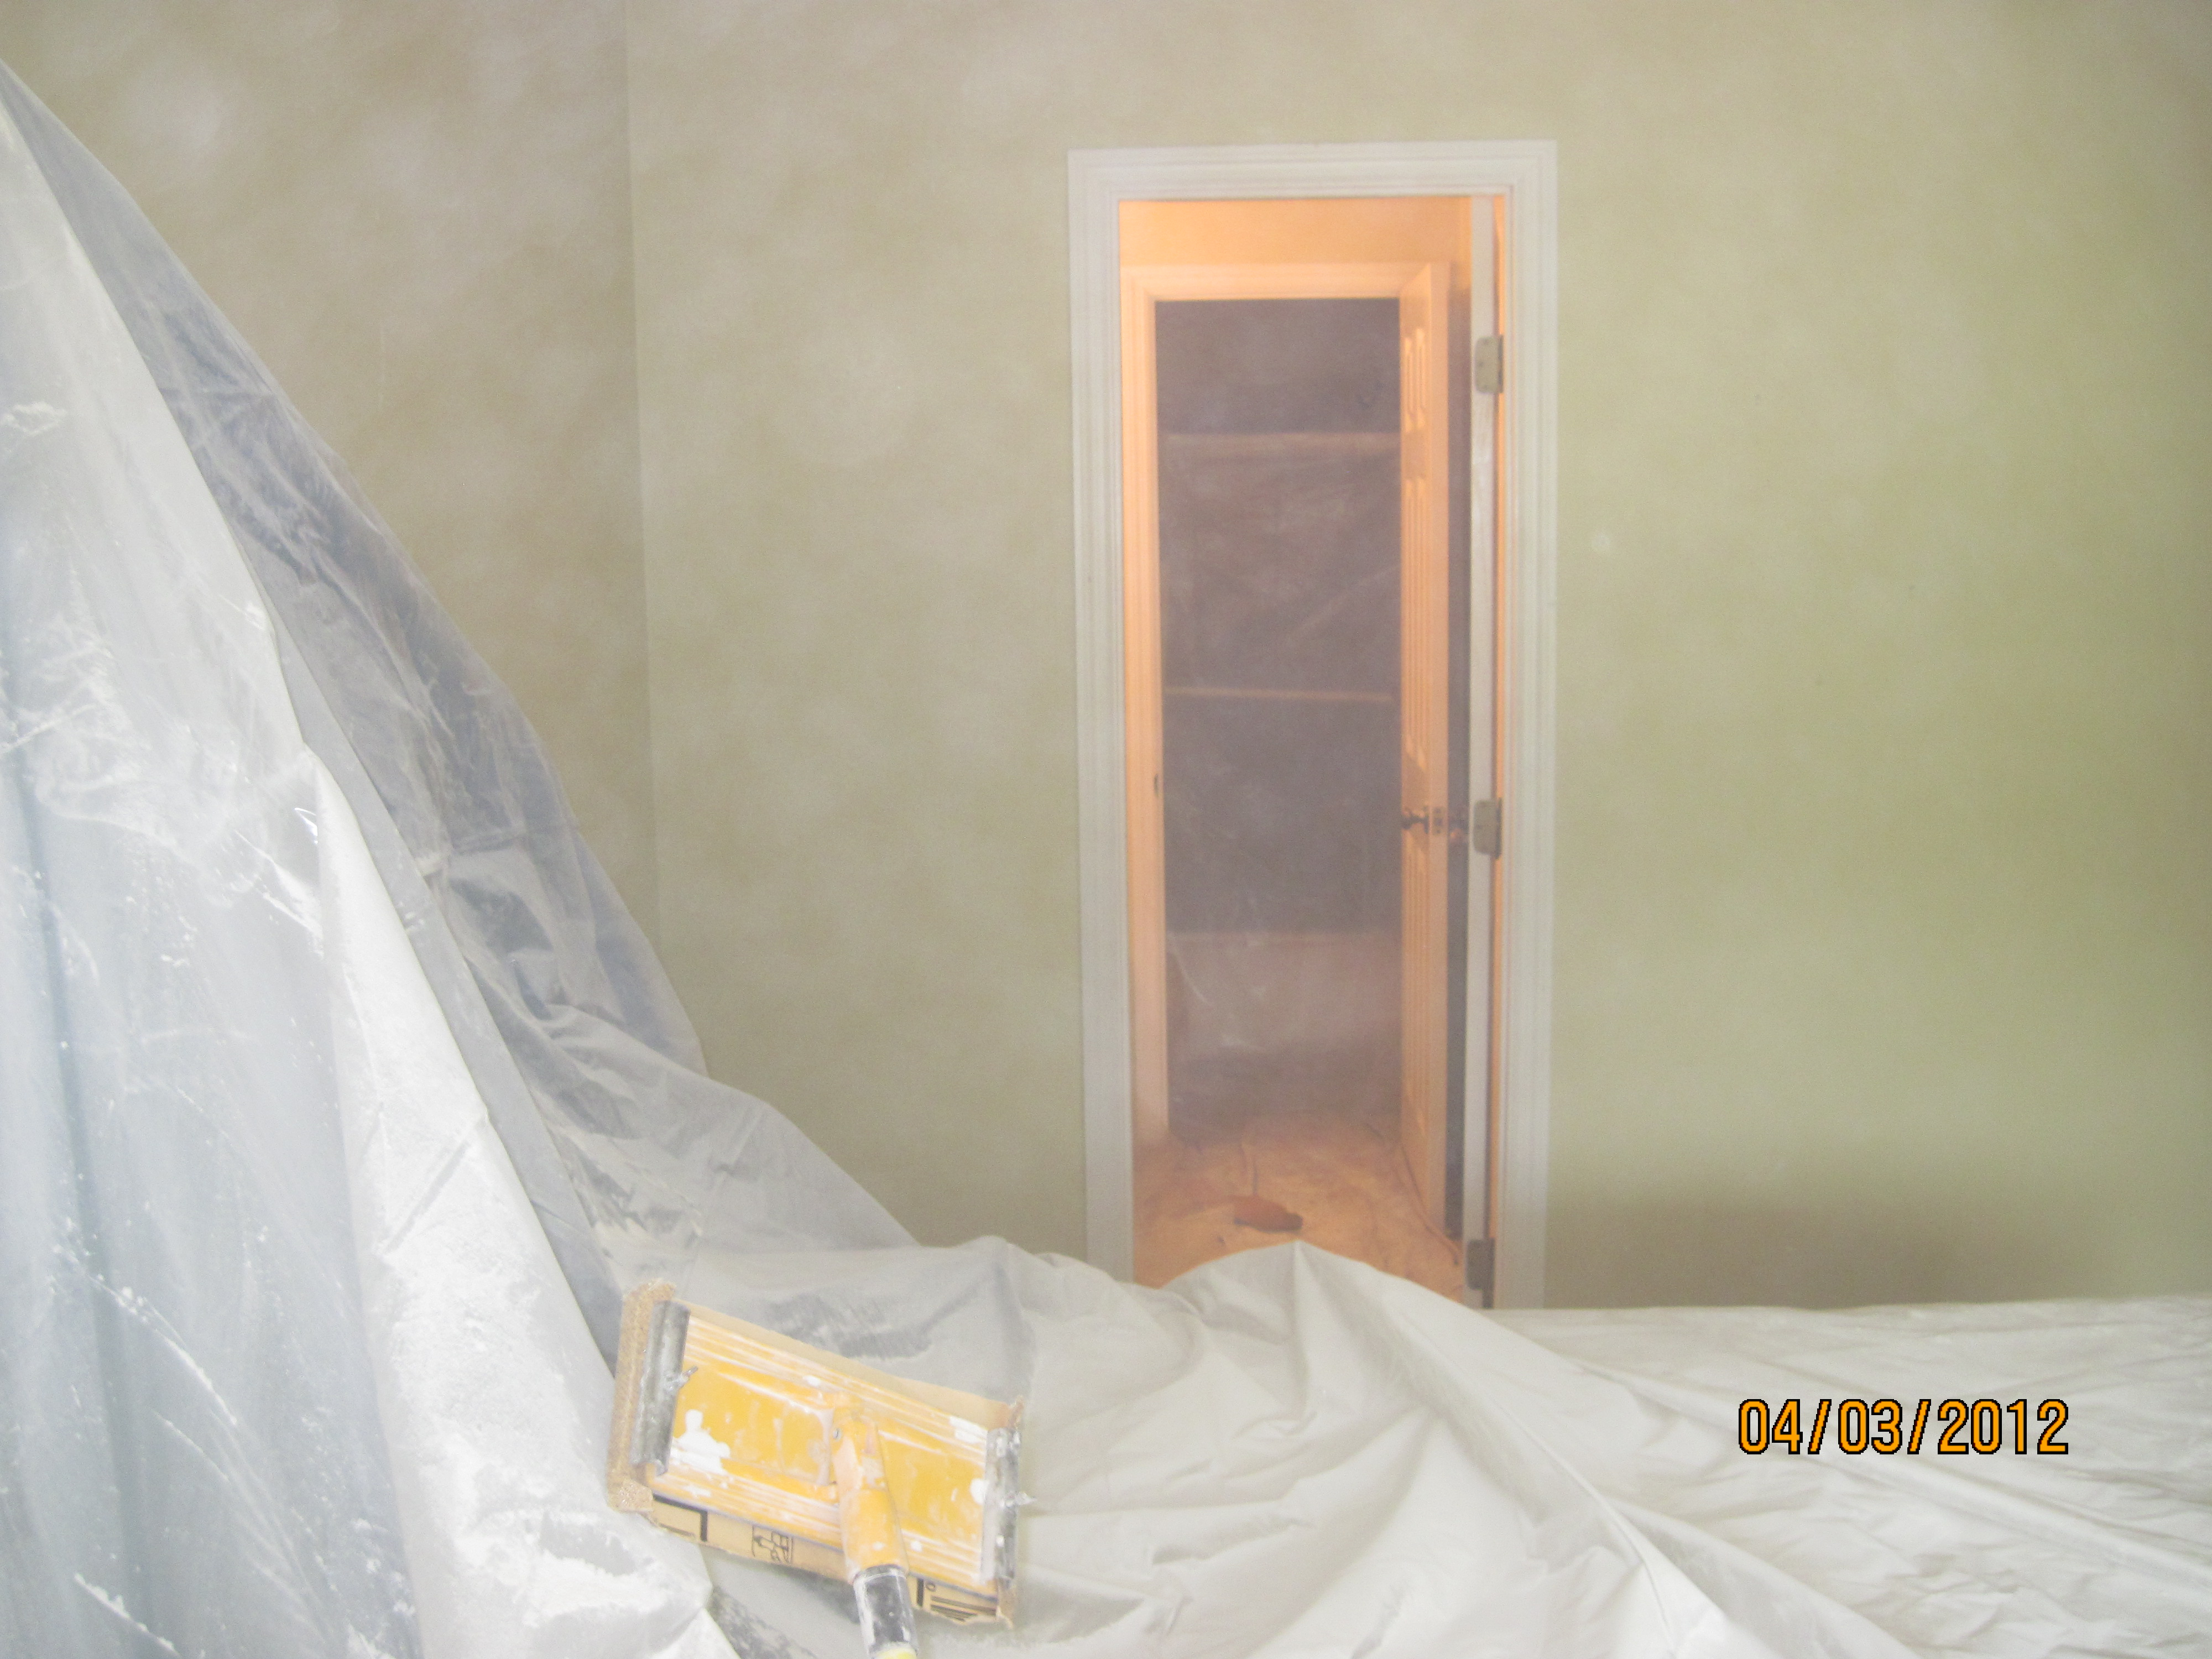 6Covering surfaces before painting